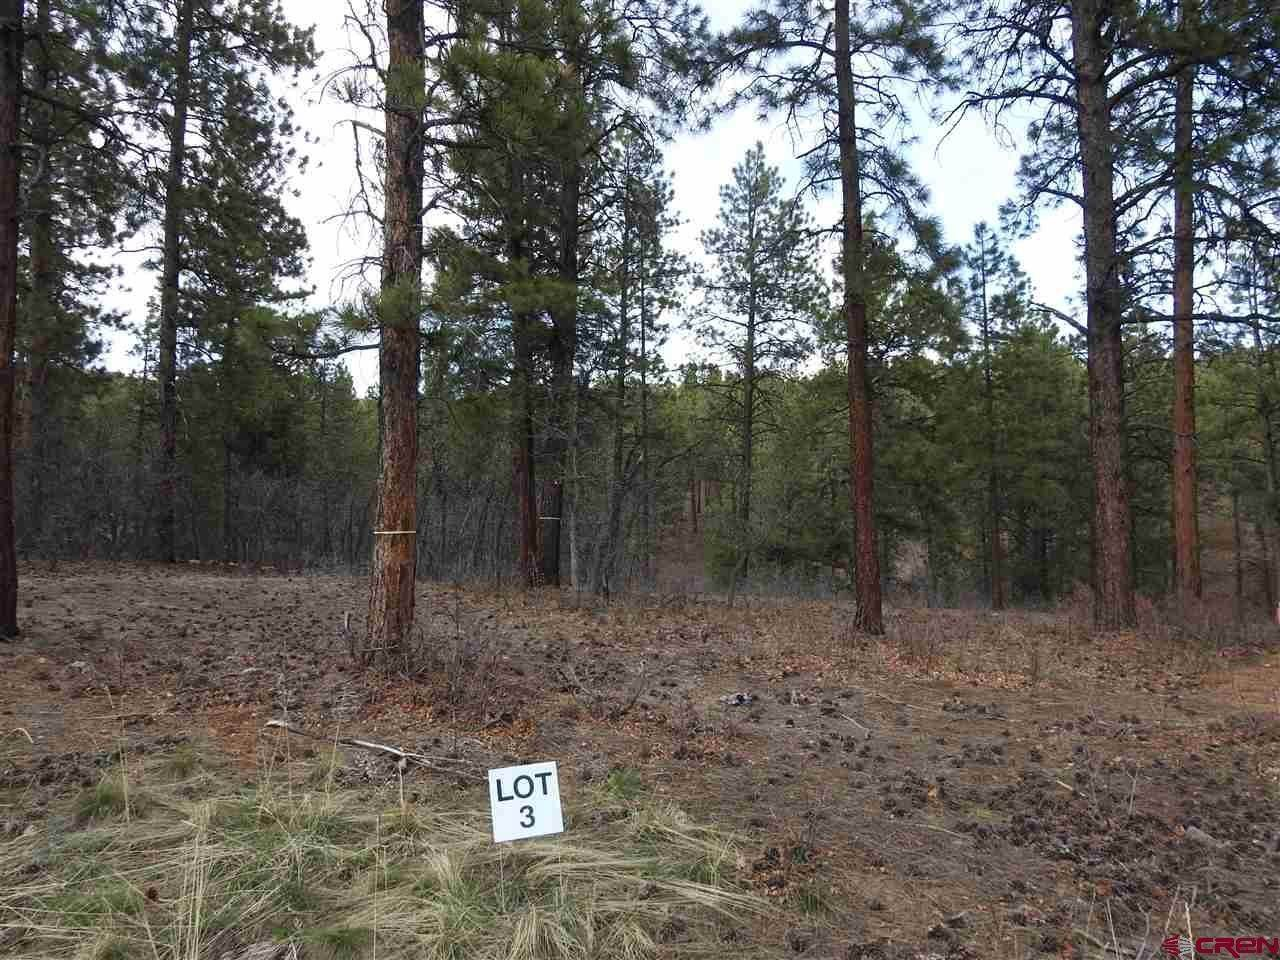 Residential at 47 Canyon Pines (Lot 3) Place Durango, Colorado 81301 United States